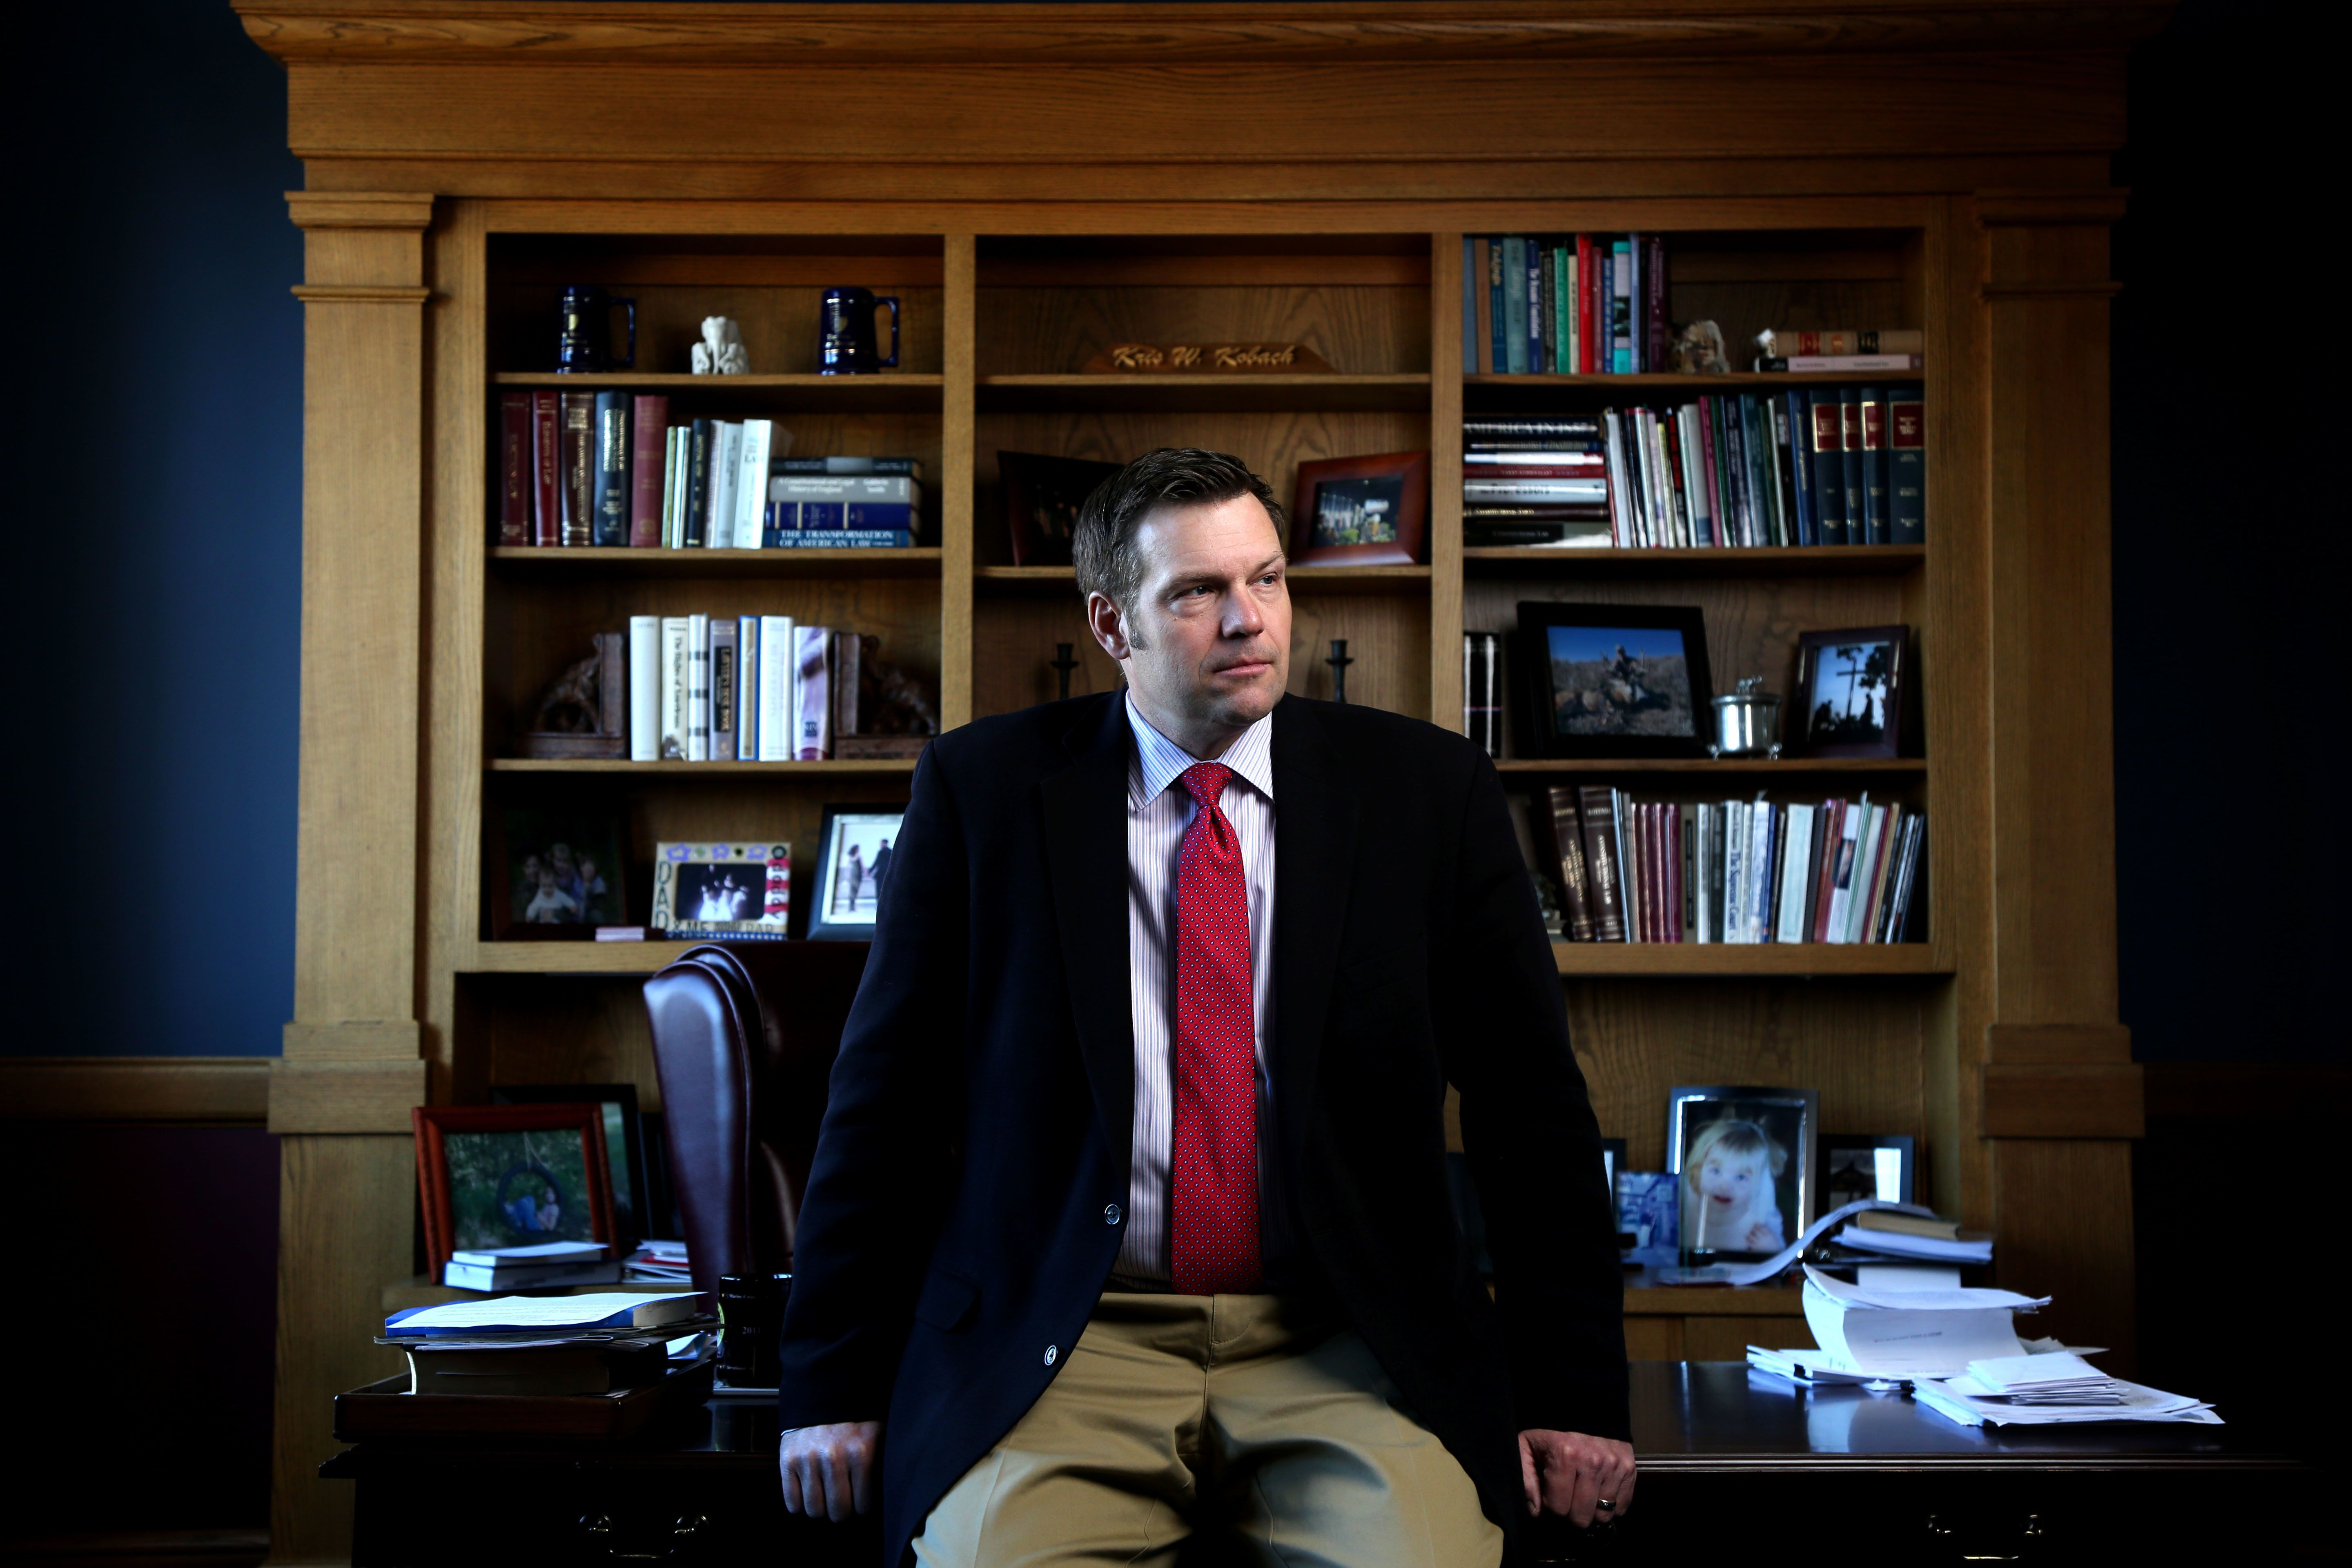 TOPEKA, KS - FEBRUARY, 17: Kansas Secretary of State Kris Kobach discusses the Kansas proof of citizenship requirements for voter registration in his office in Topeka, Ks. Wednesday February 17, 2015. (Photo by Christopher Smith/ For the Washington Post)